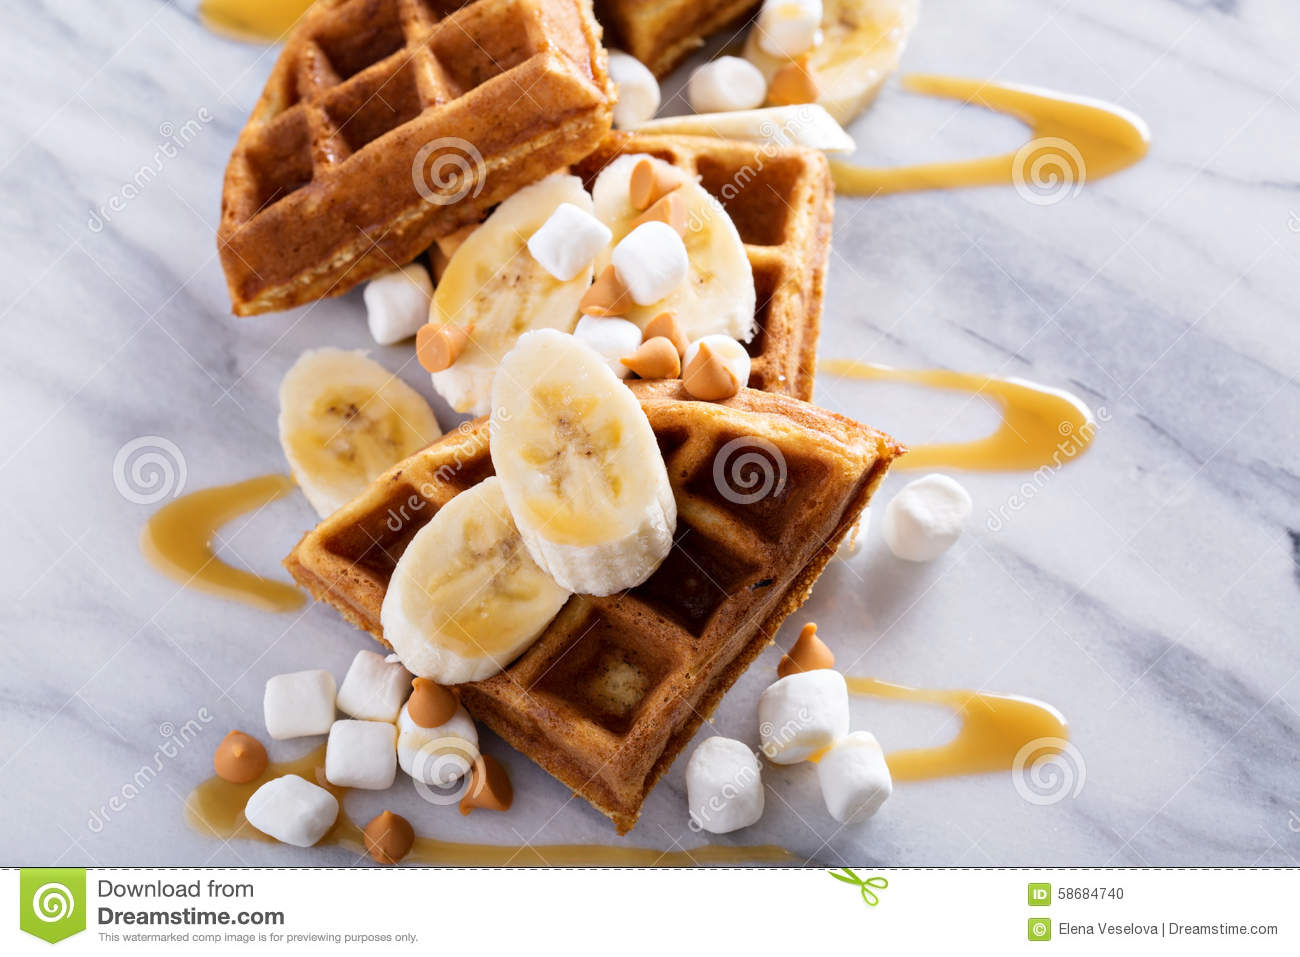 Waffles with peanut butter and bananas